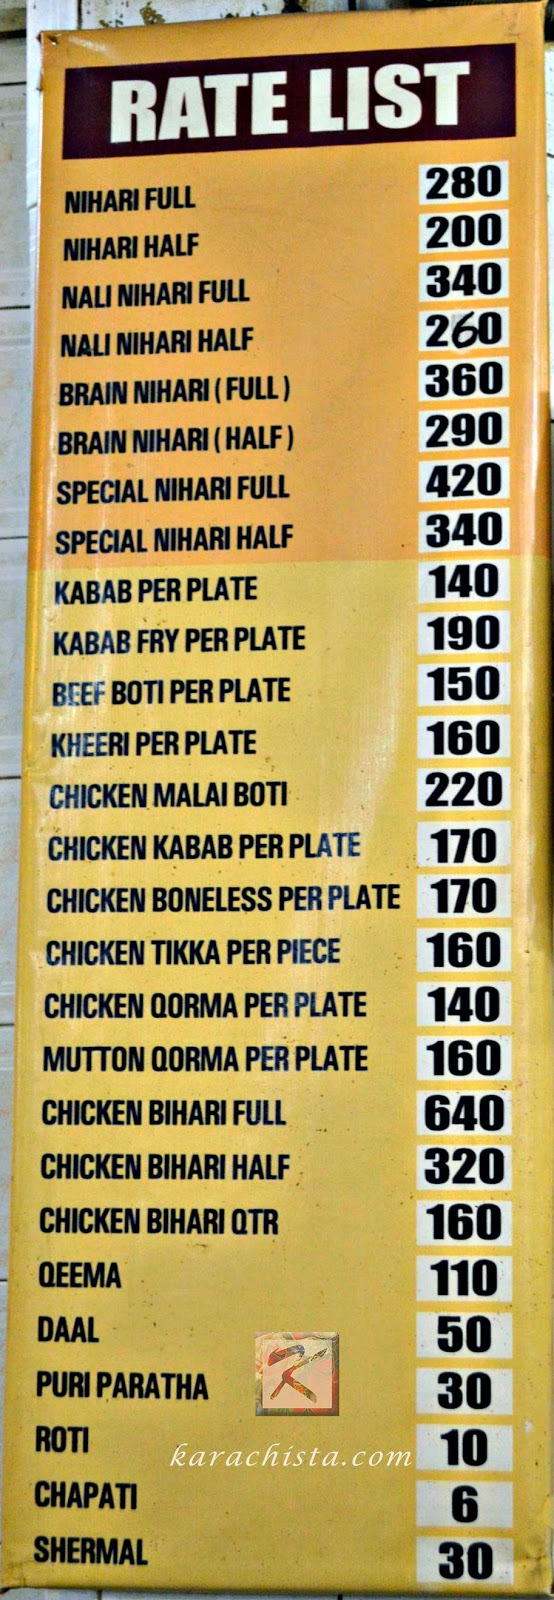 The menu at Waheed Kebab House Karachi